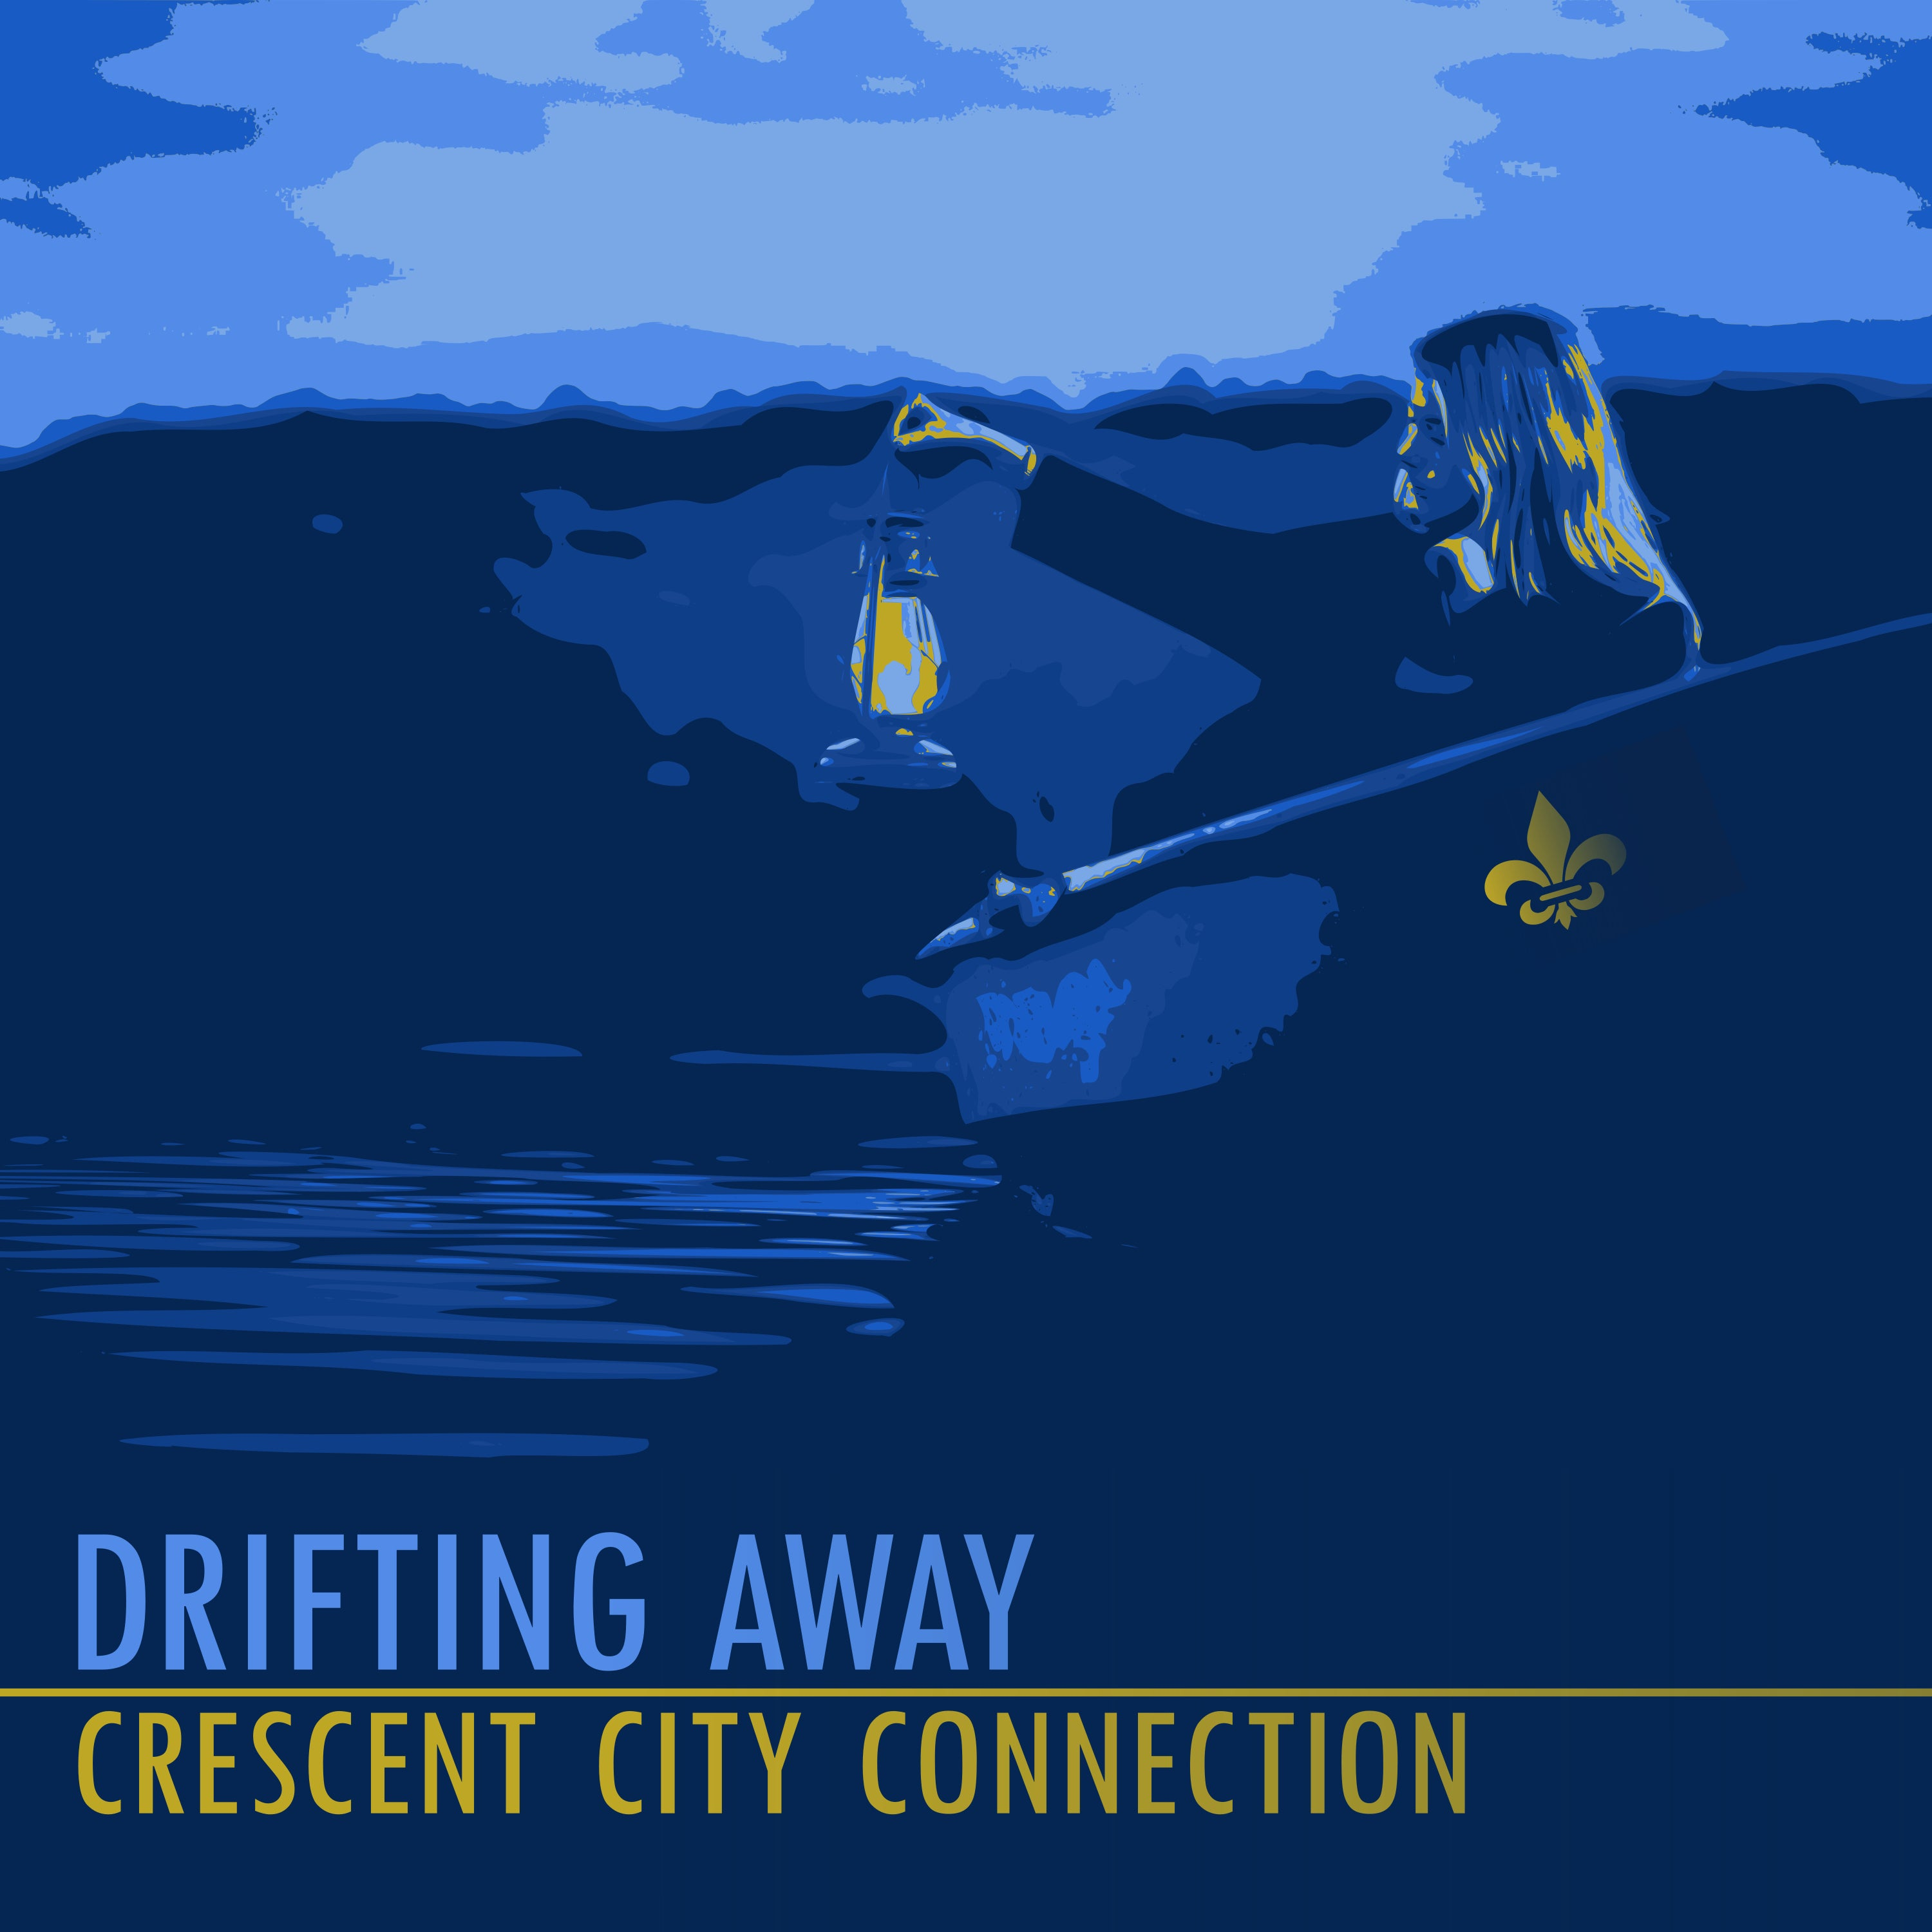 Crescent City Connection - Drifting Away | Synesthesia Music